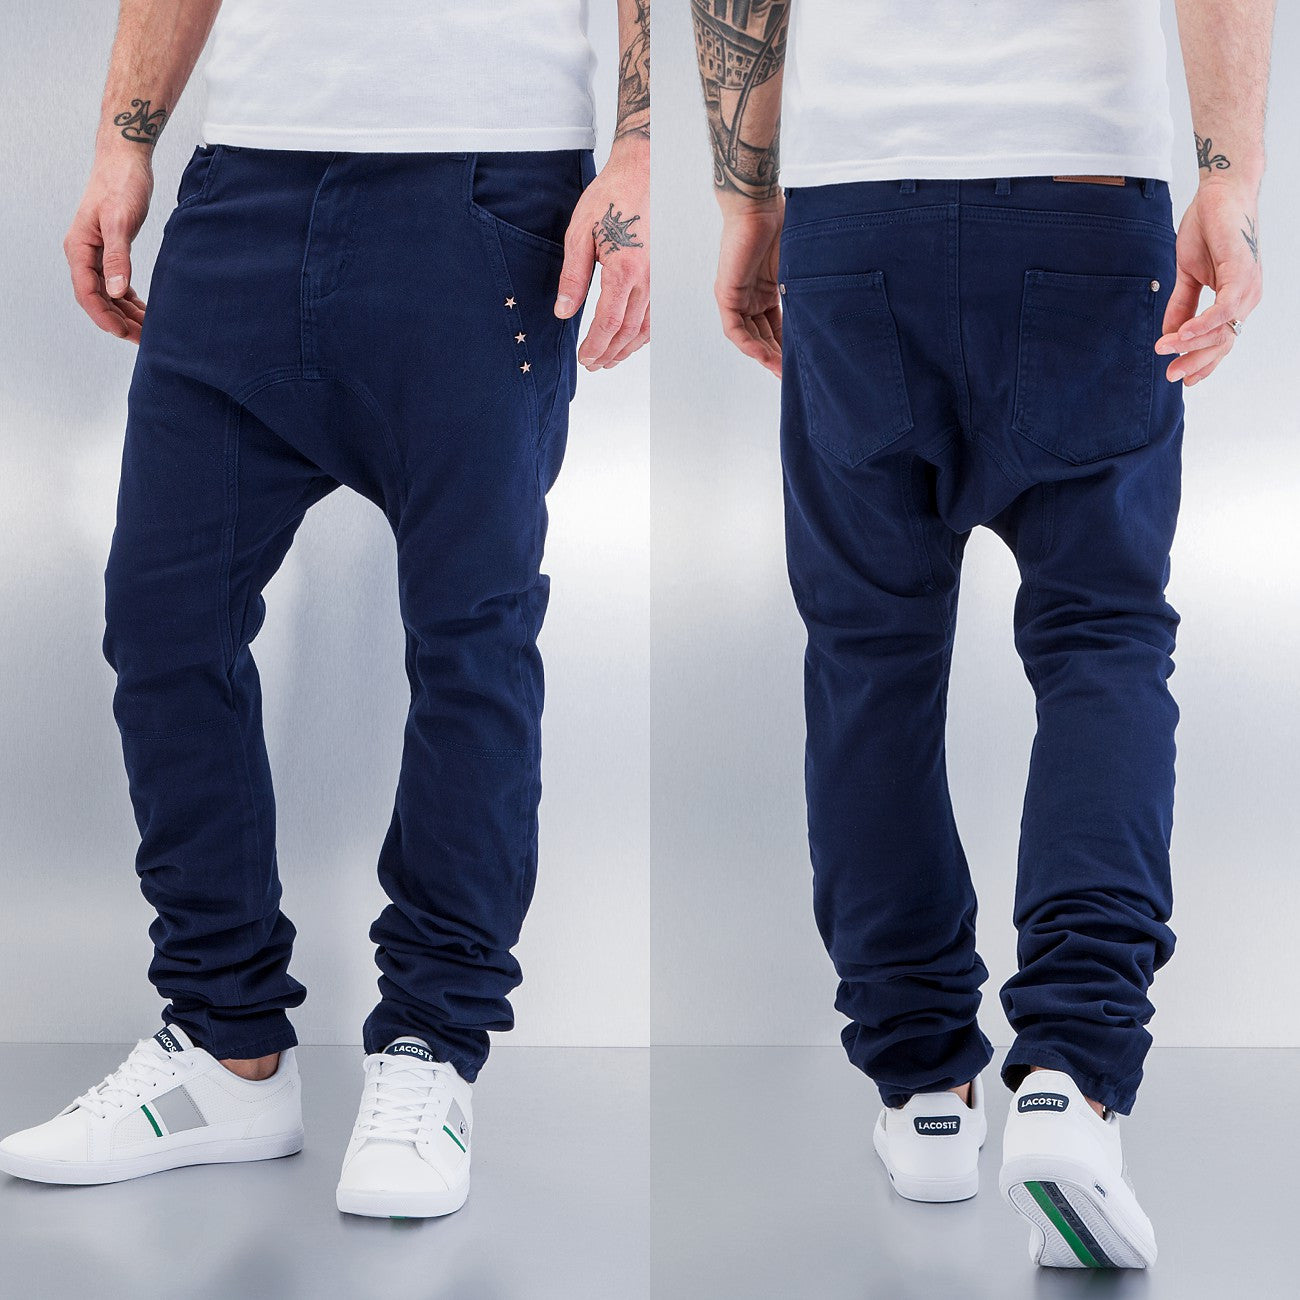 Just Rhyse Three Stars Antifit Jeans  Navy